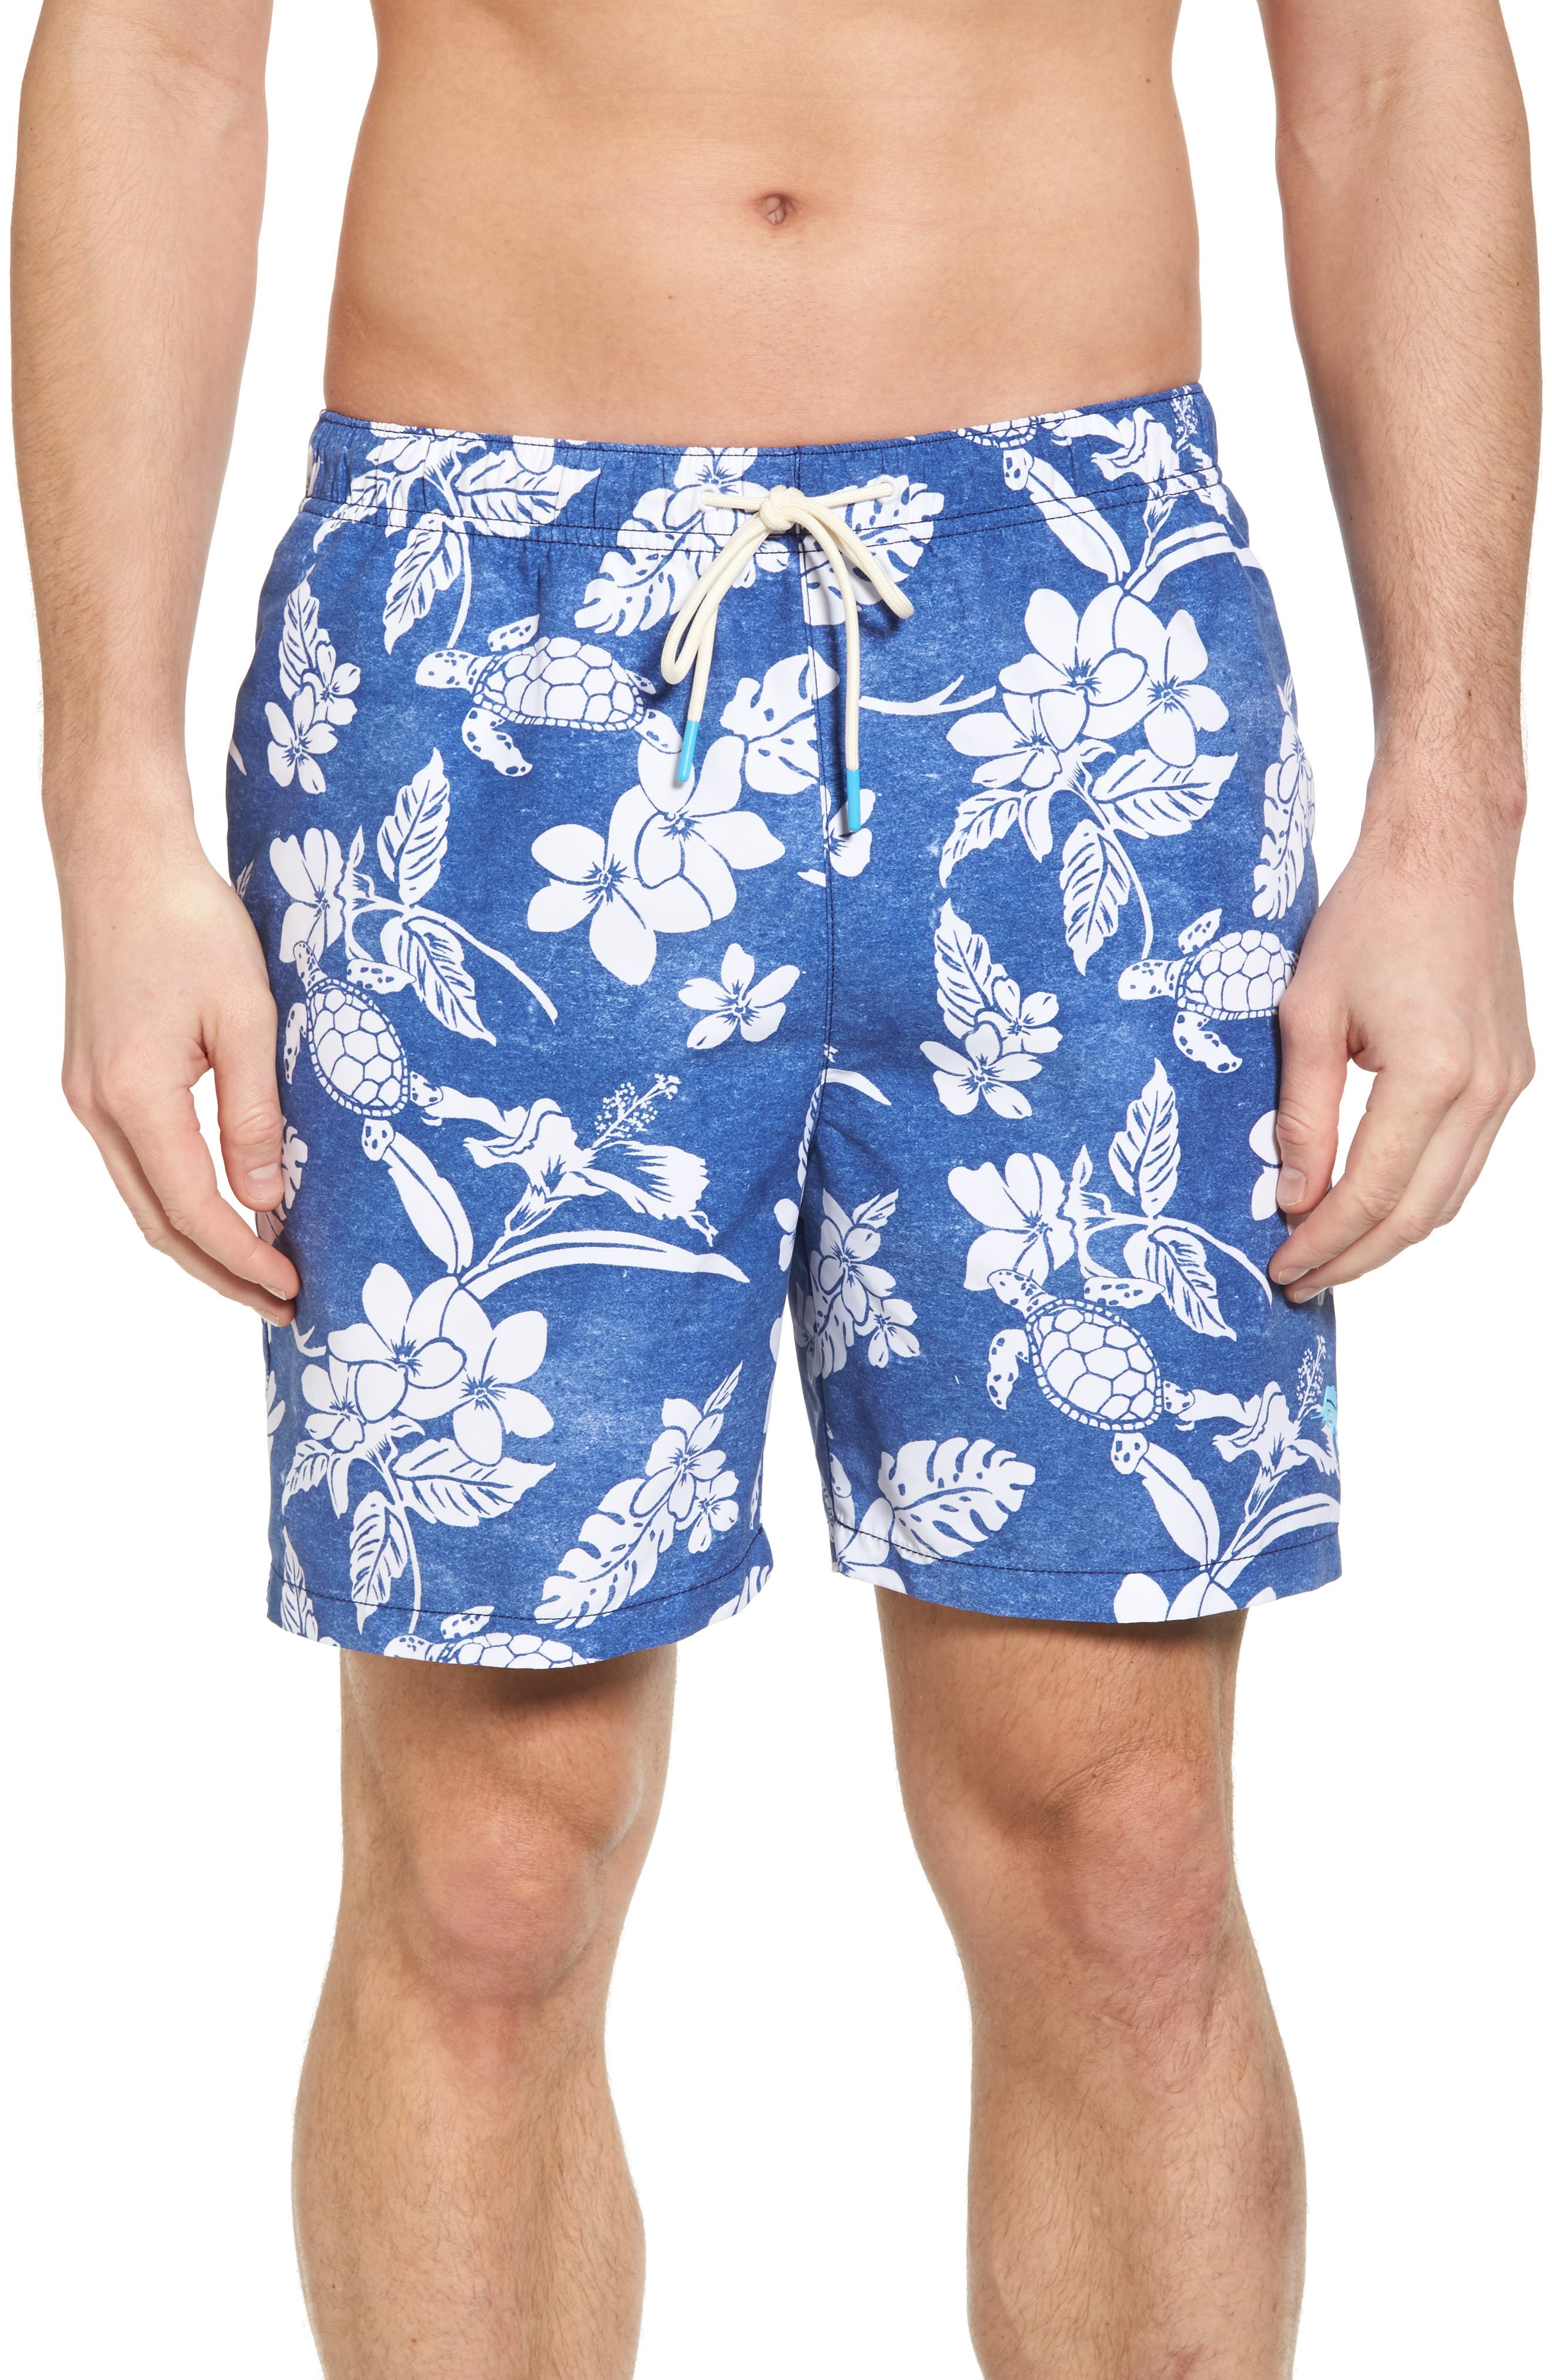 Naples Turtle Beach Swim Trunks,                         Main,                         color, Kingdom Blue